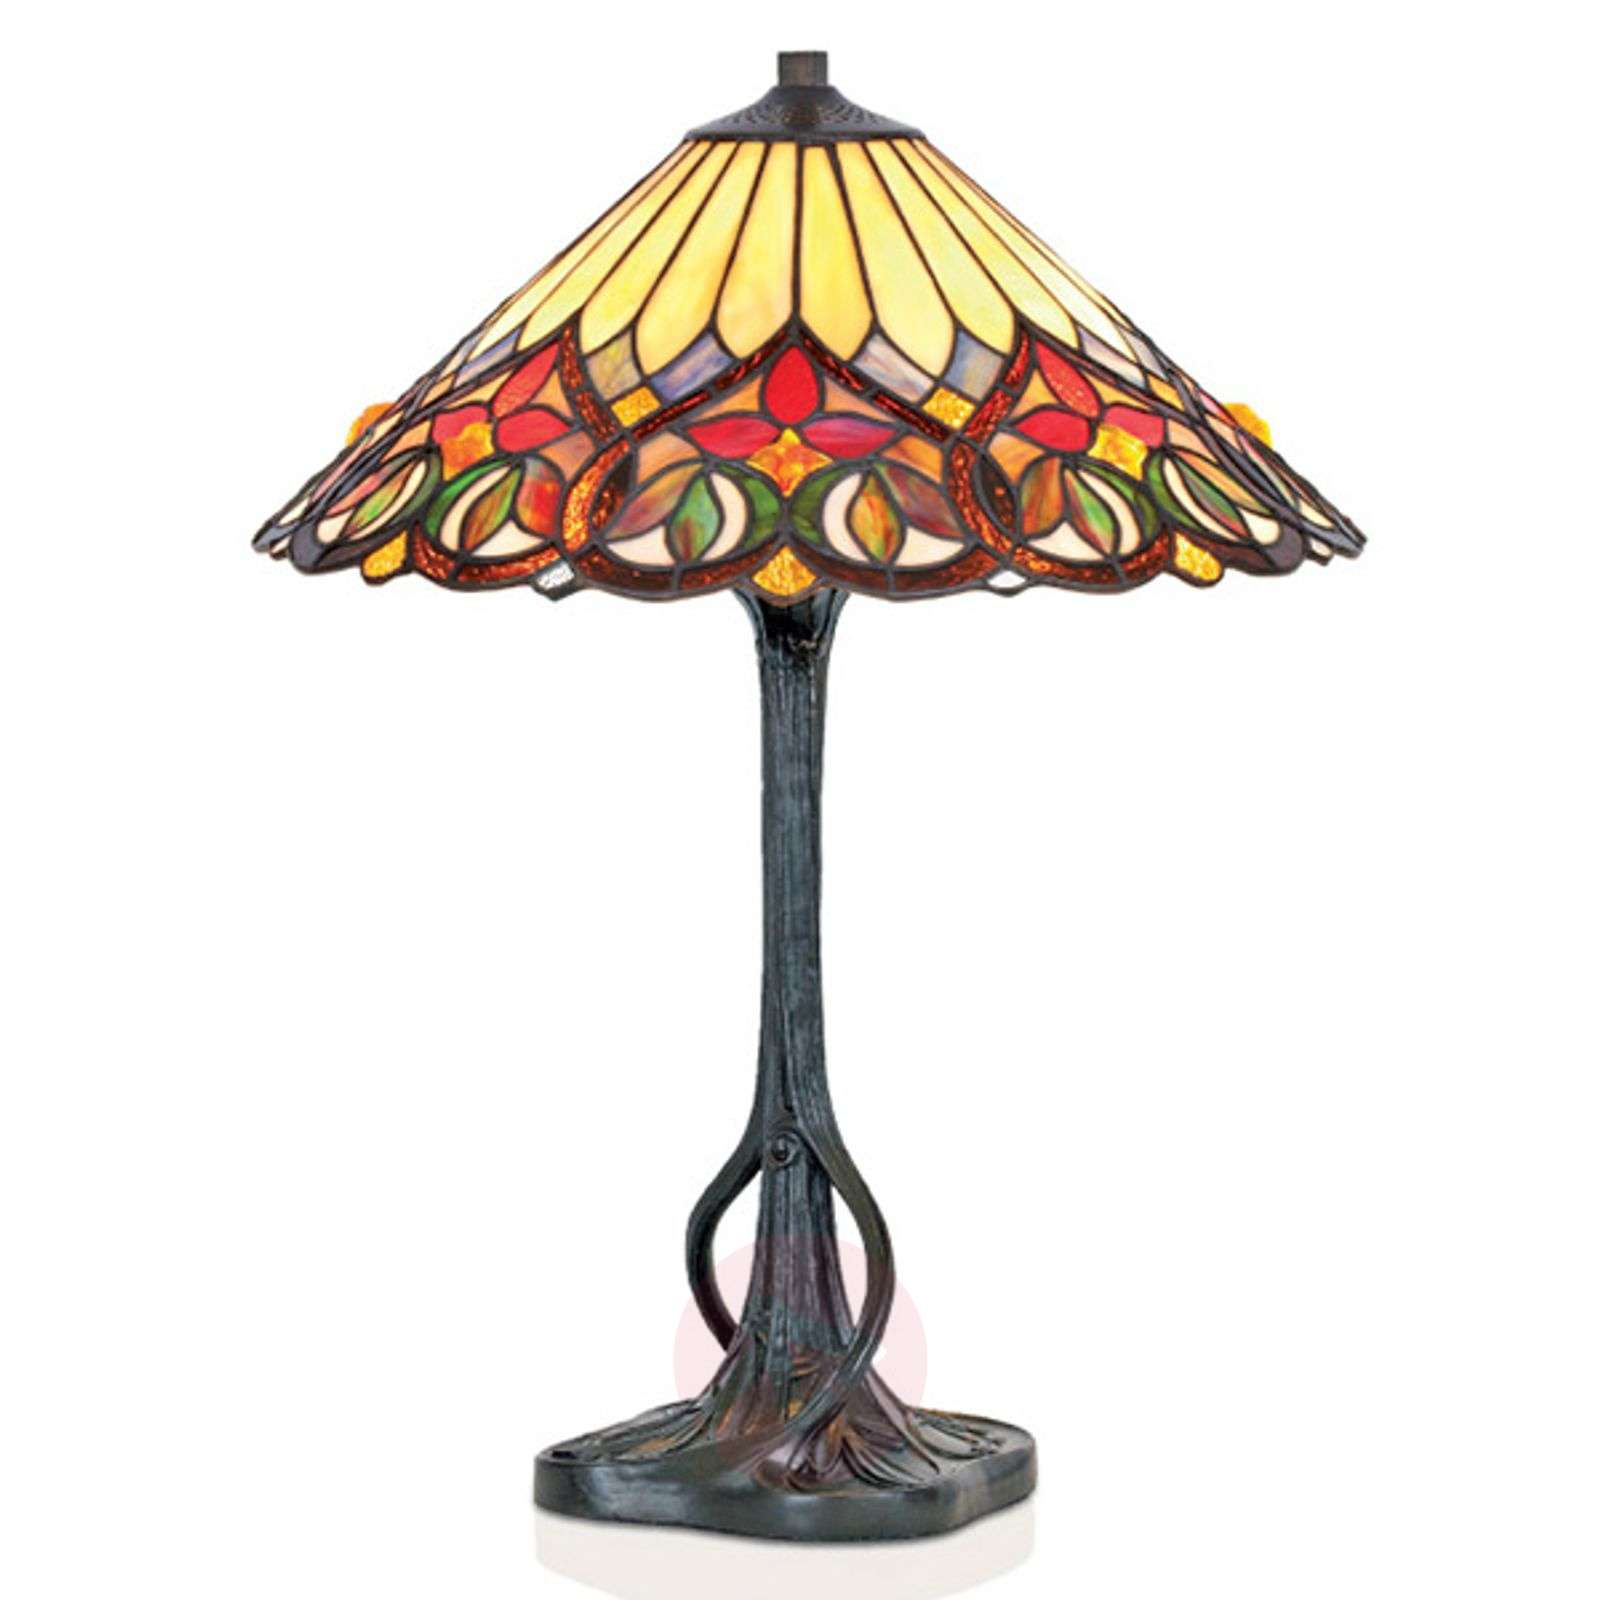 Lovely table lamp Anni-1032333-01